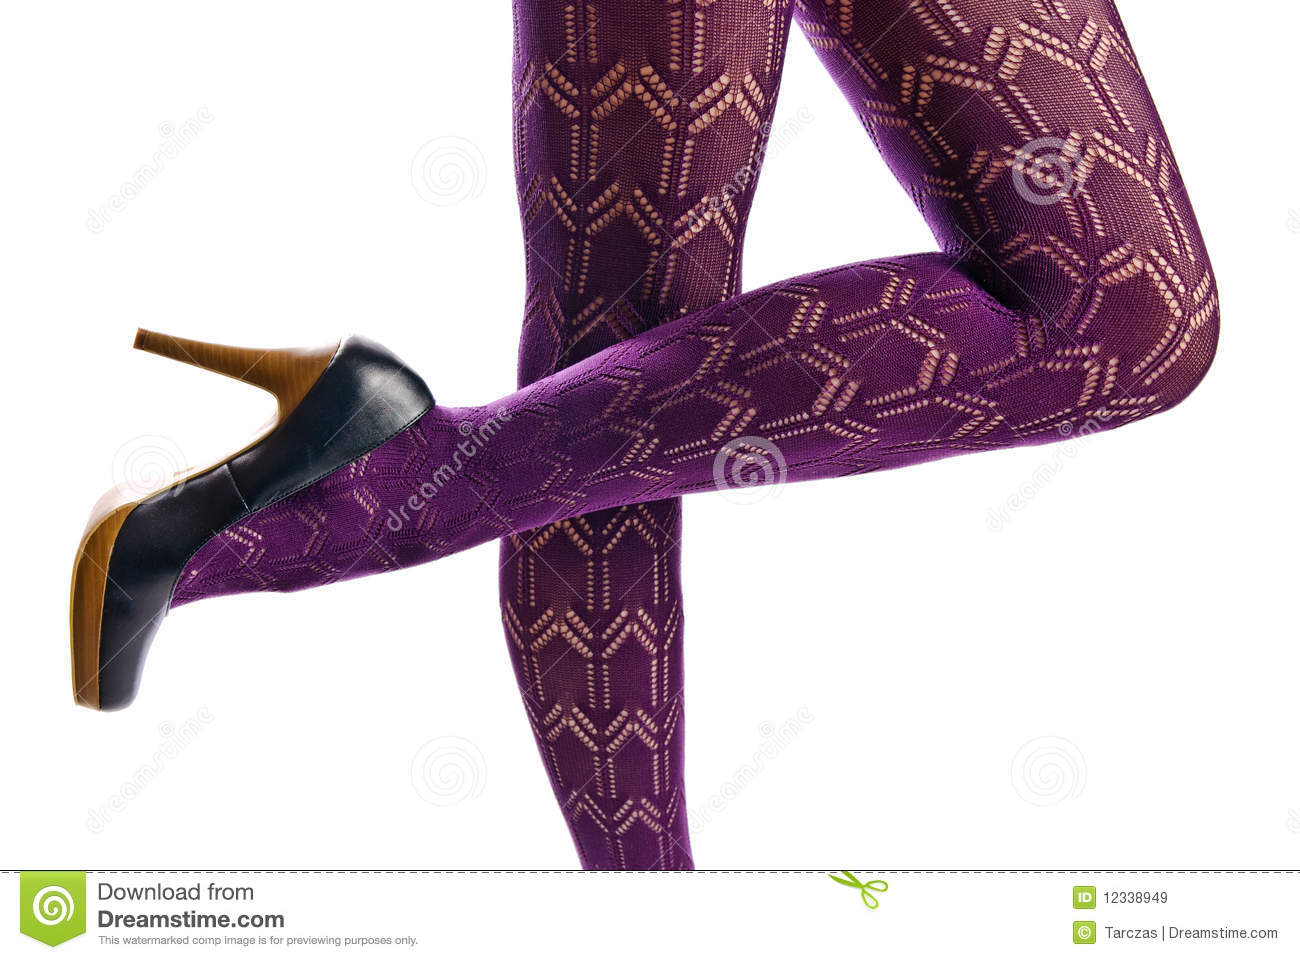 THE BEST!!!!!!!!!!!!!!!!!!!!!!! patterned pantyhose liloo dream cum